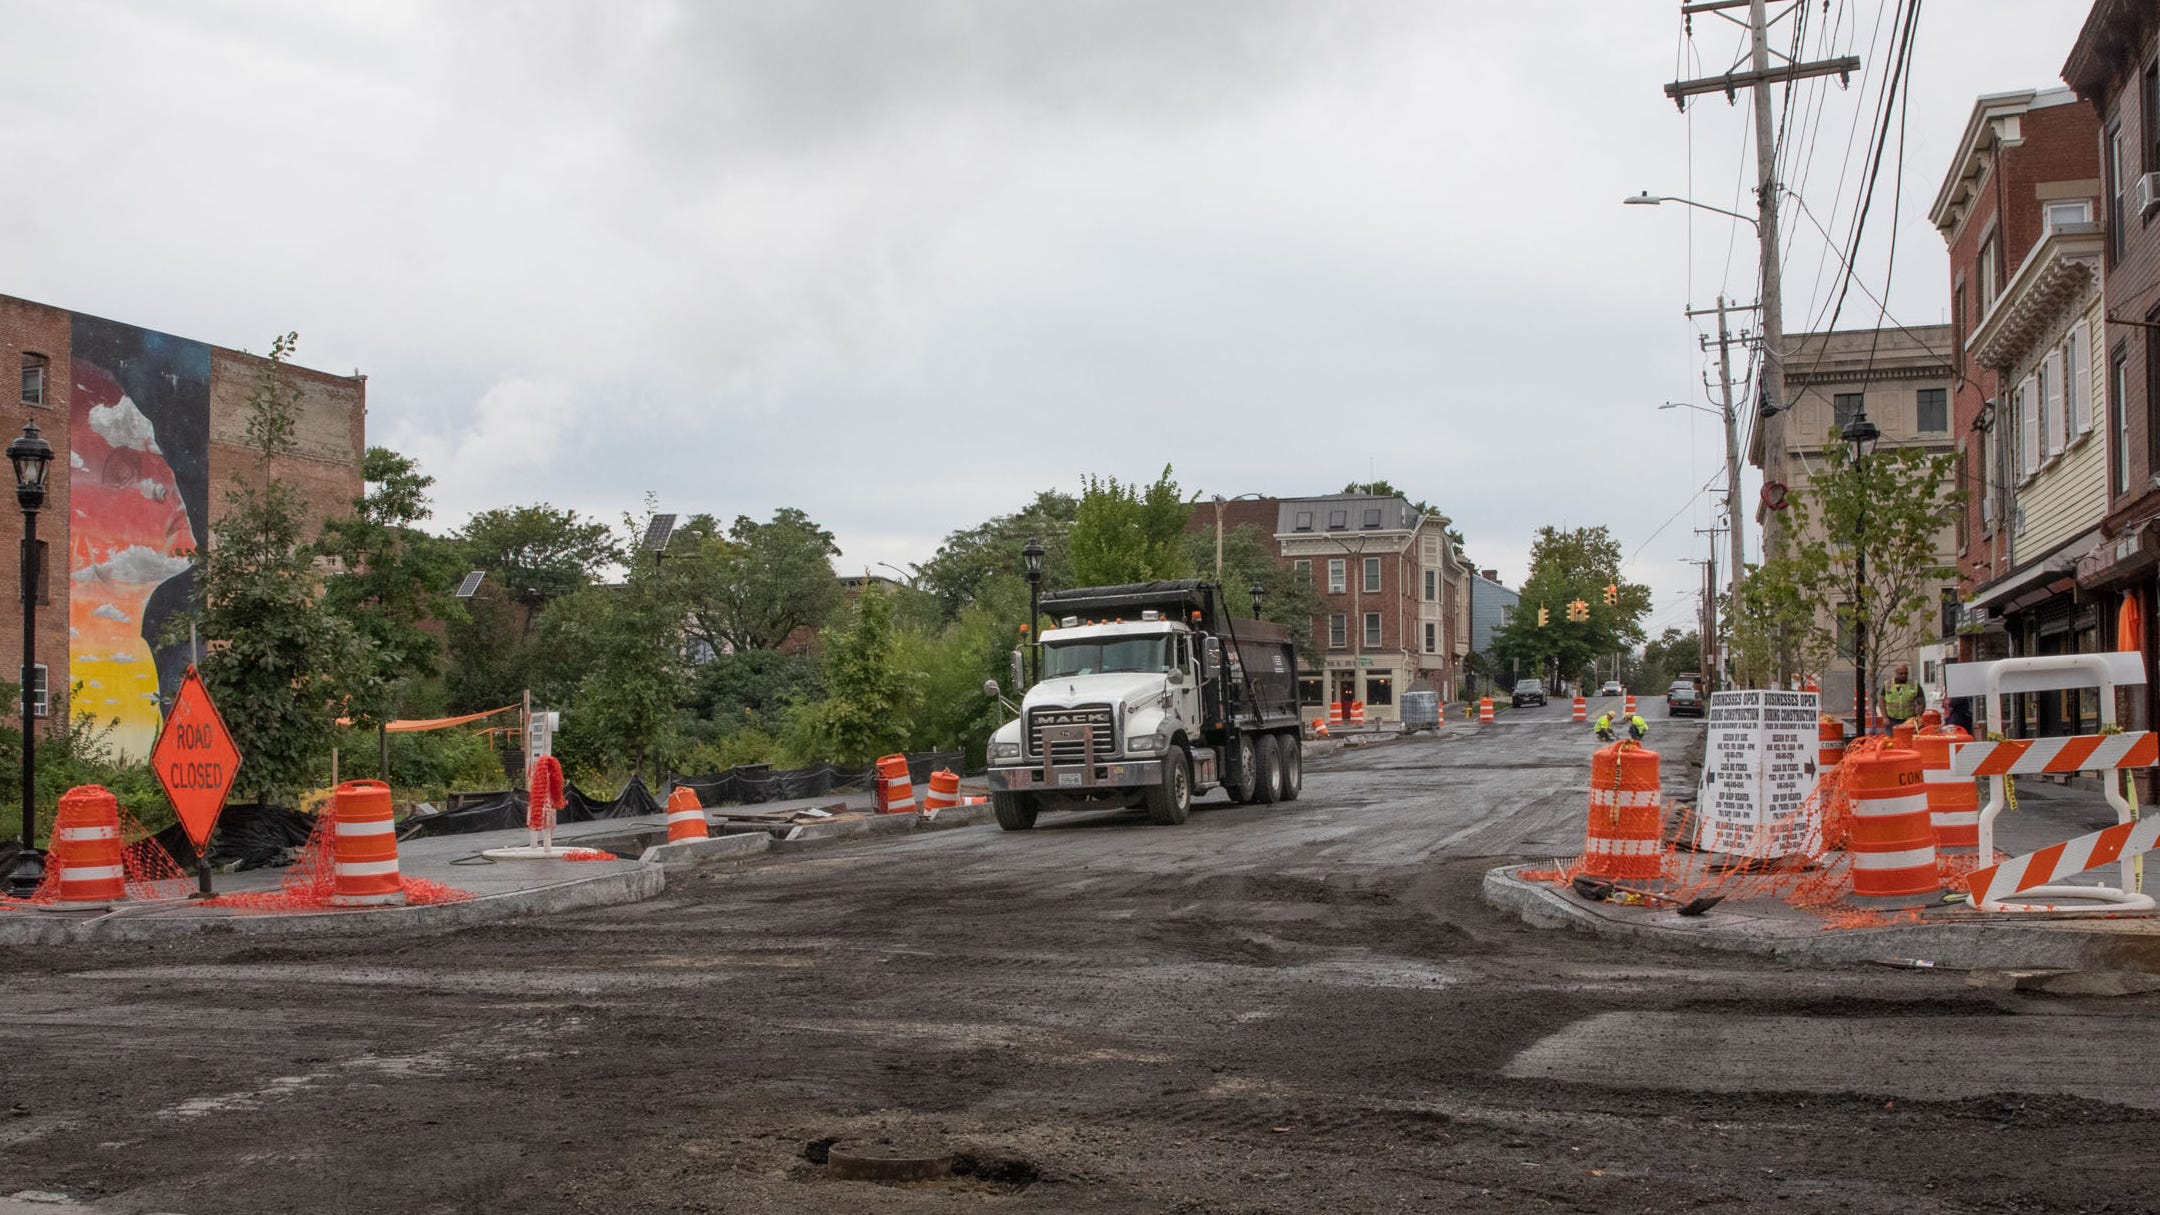 Ongoing construction on Liberty Street in Newburgh, seen on Sept. 9, 2021.